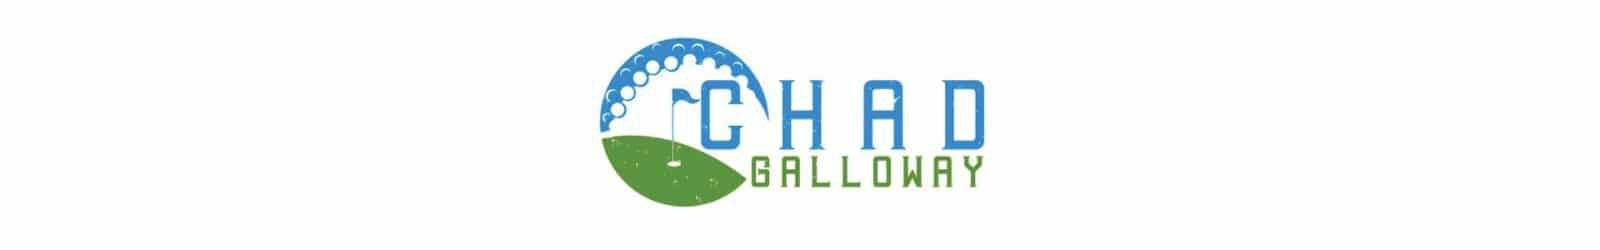 Chad Balloway Dental logo